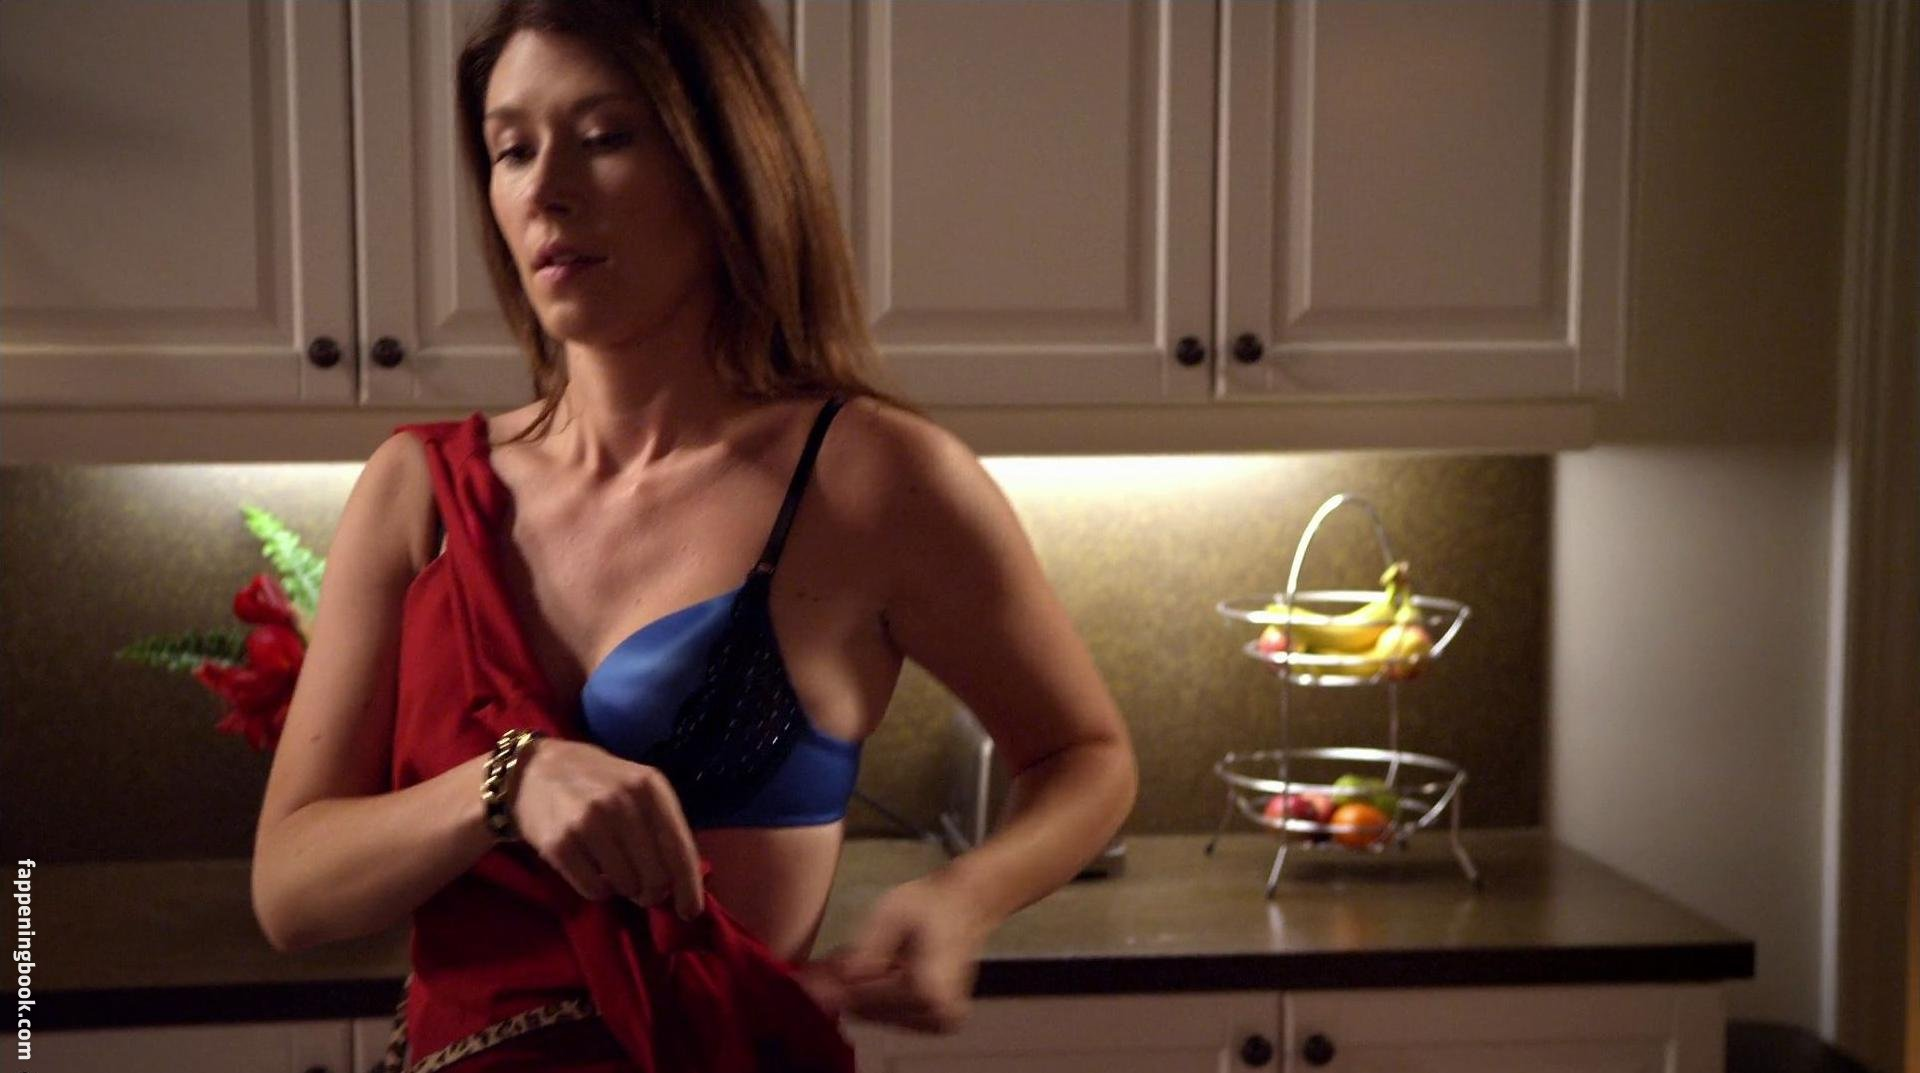 Jewel Staite Fappening photo 5